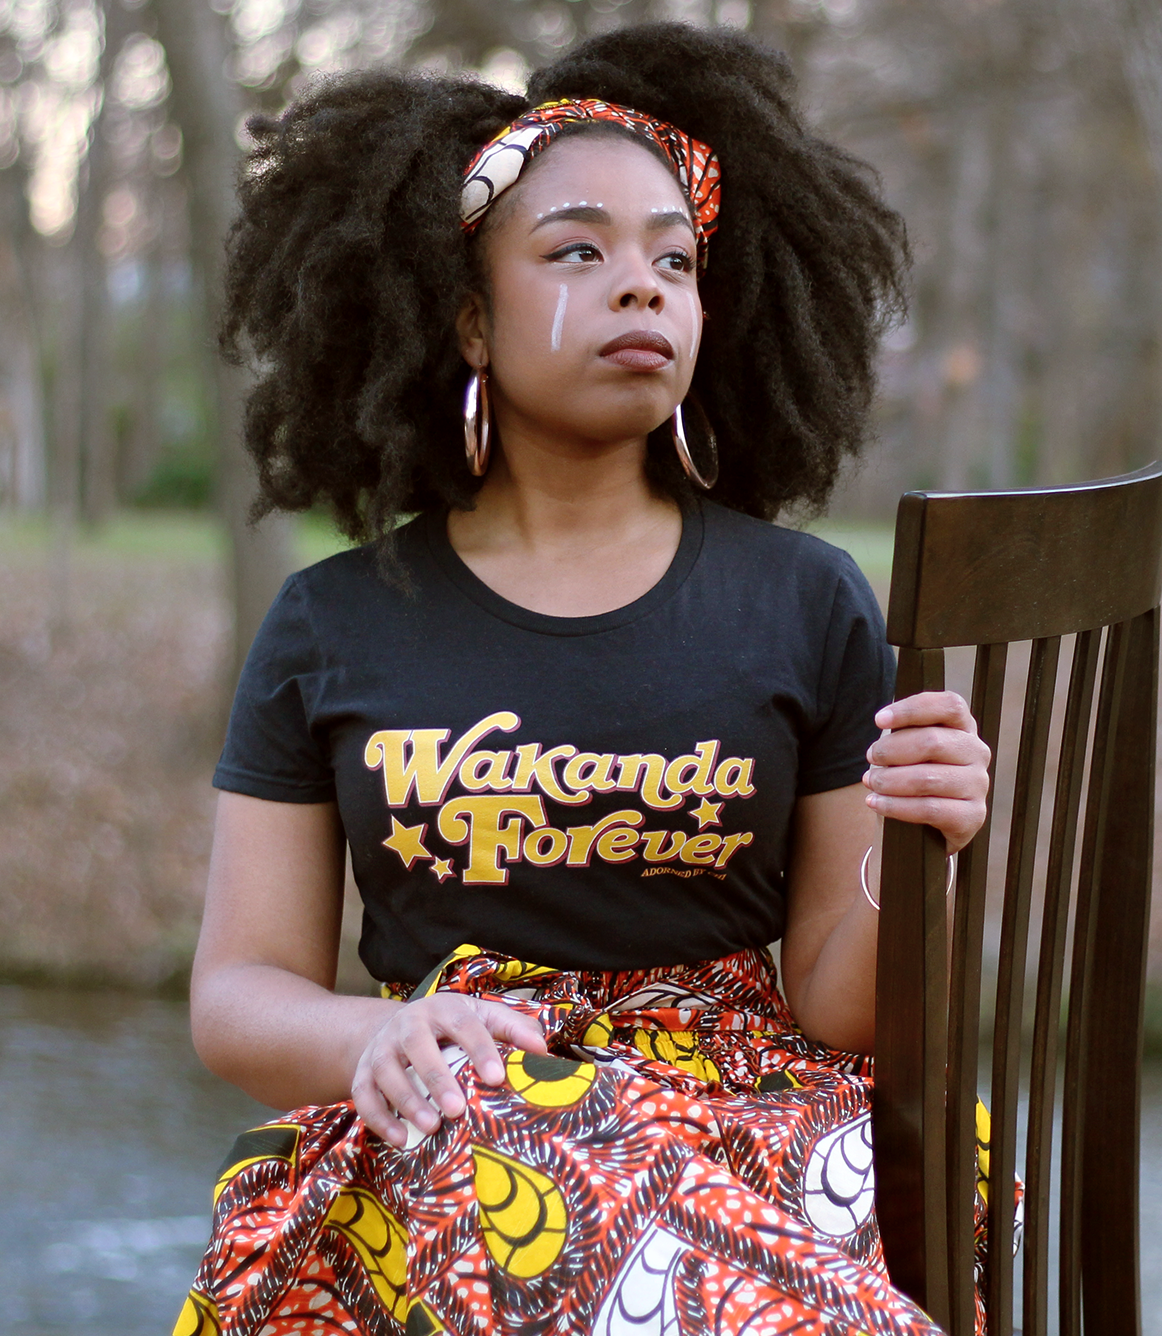 ... t-shirt. Wakanda Forever! Adorned by Chi Black Panther Woman  4085a25f5708